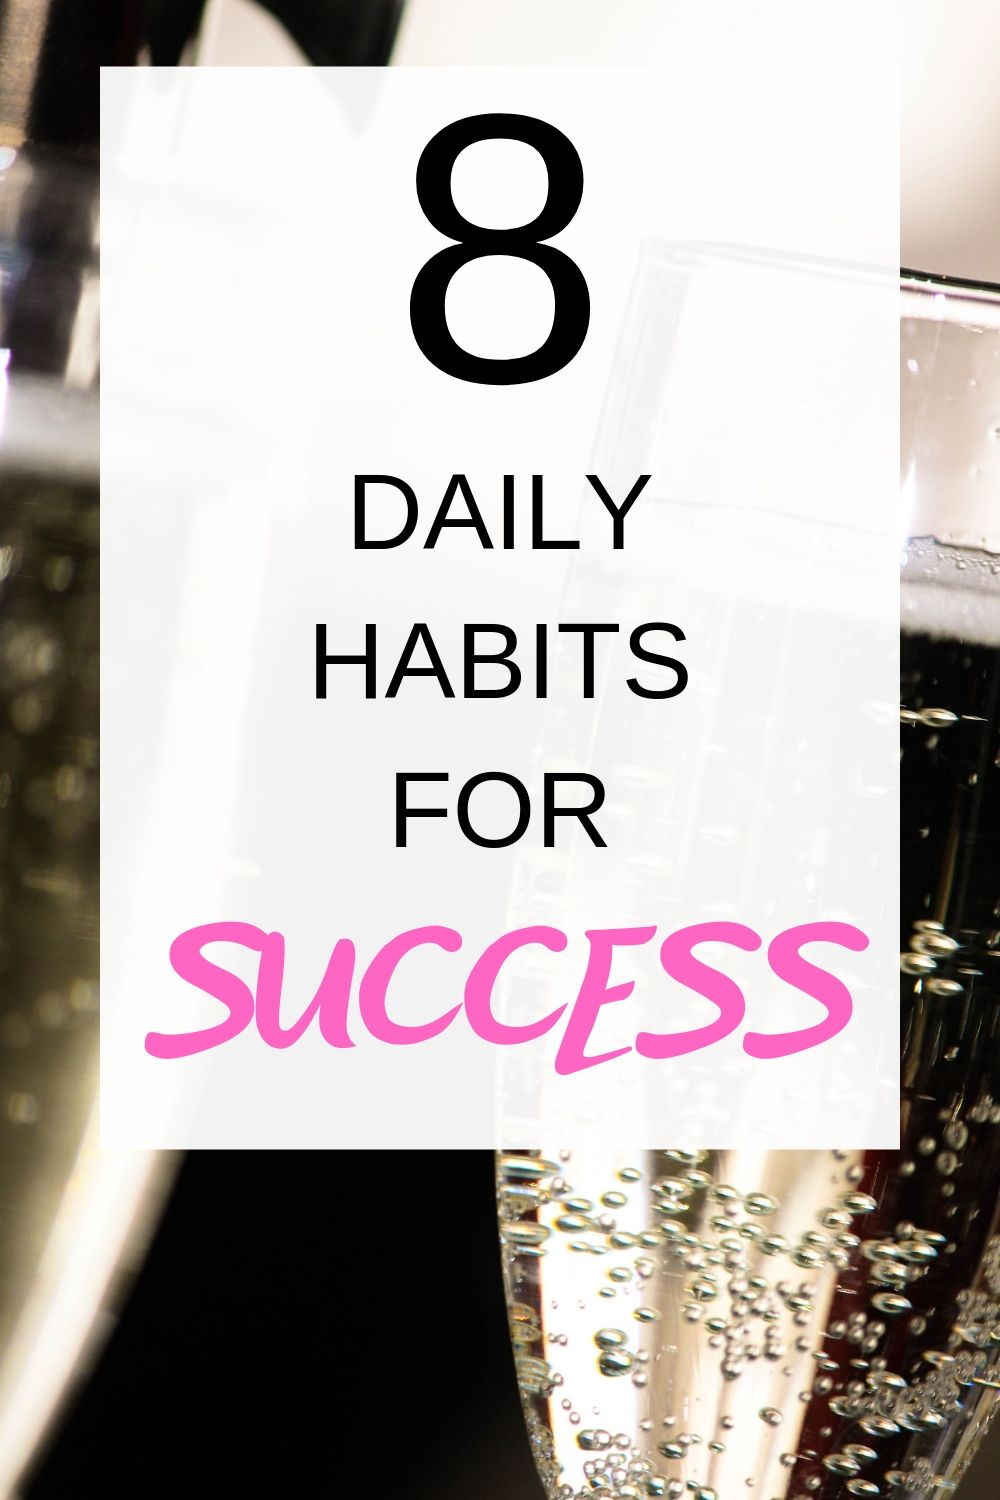 This is a great list of 8 simple habits you can adopt that will help you be more successful. Number 4 makes a big difference.